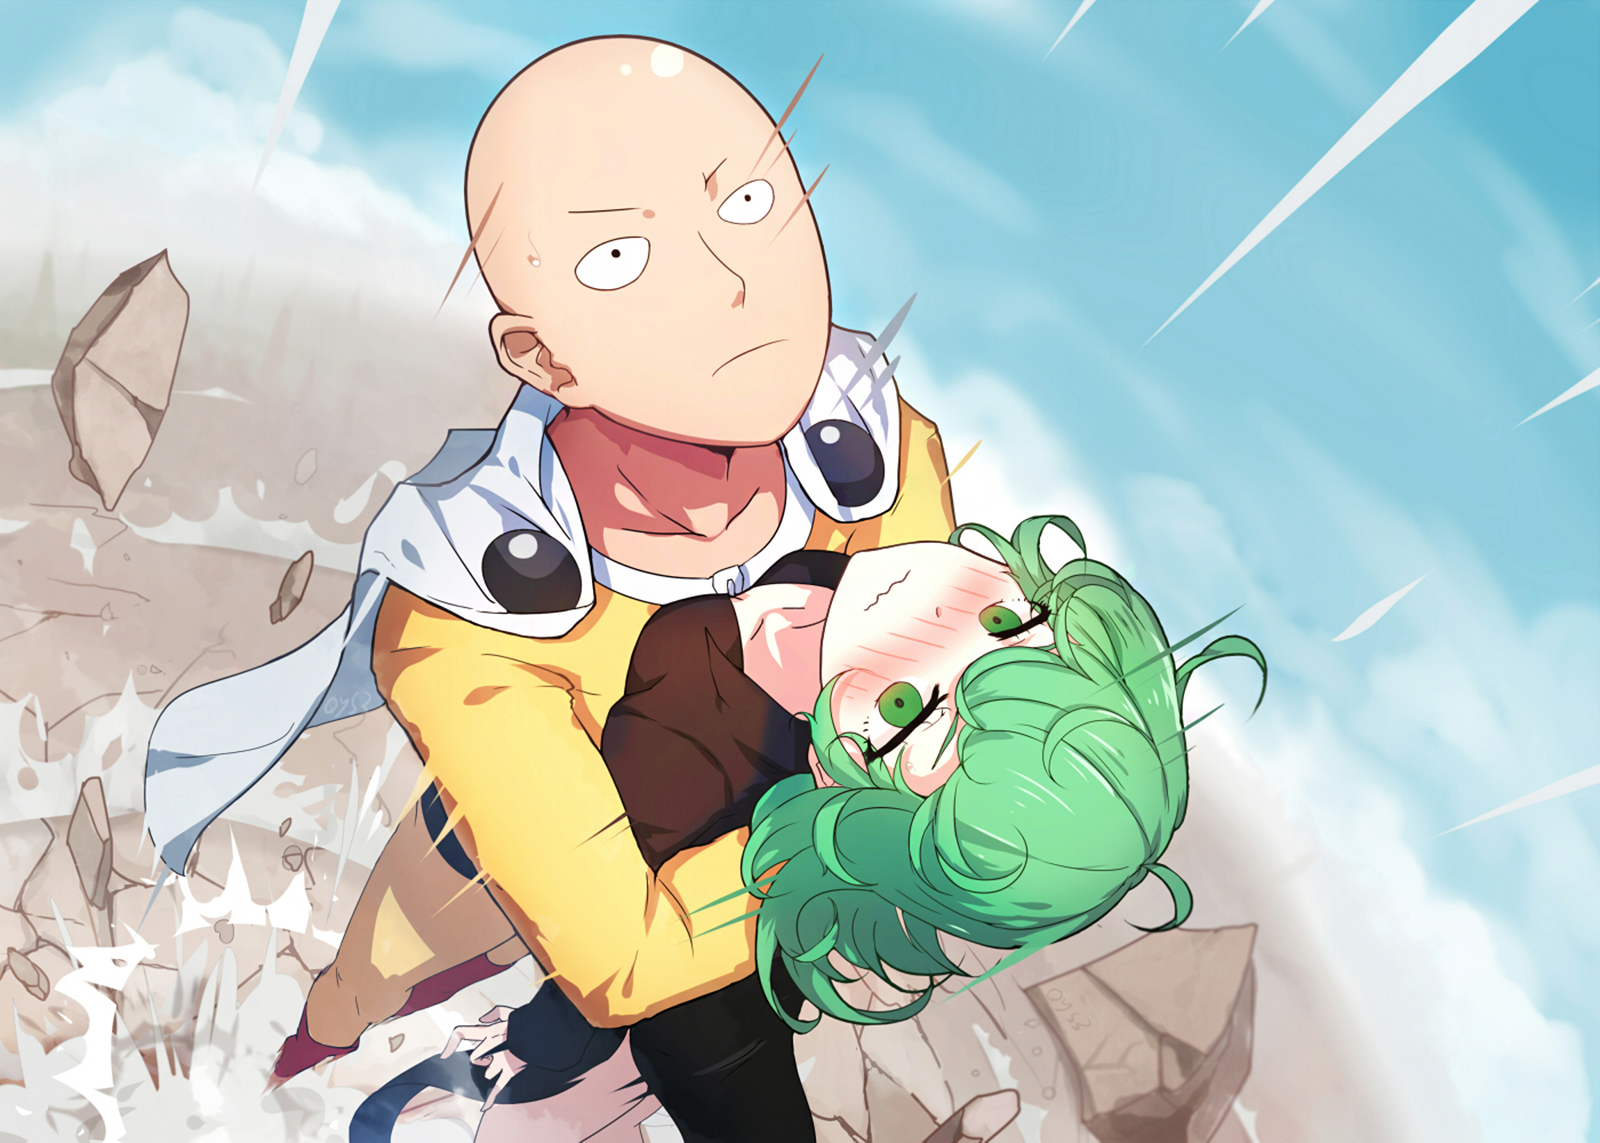 47 ] E Punch Man Desktop Wallpaper On WallpaperSafari